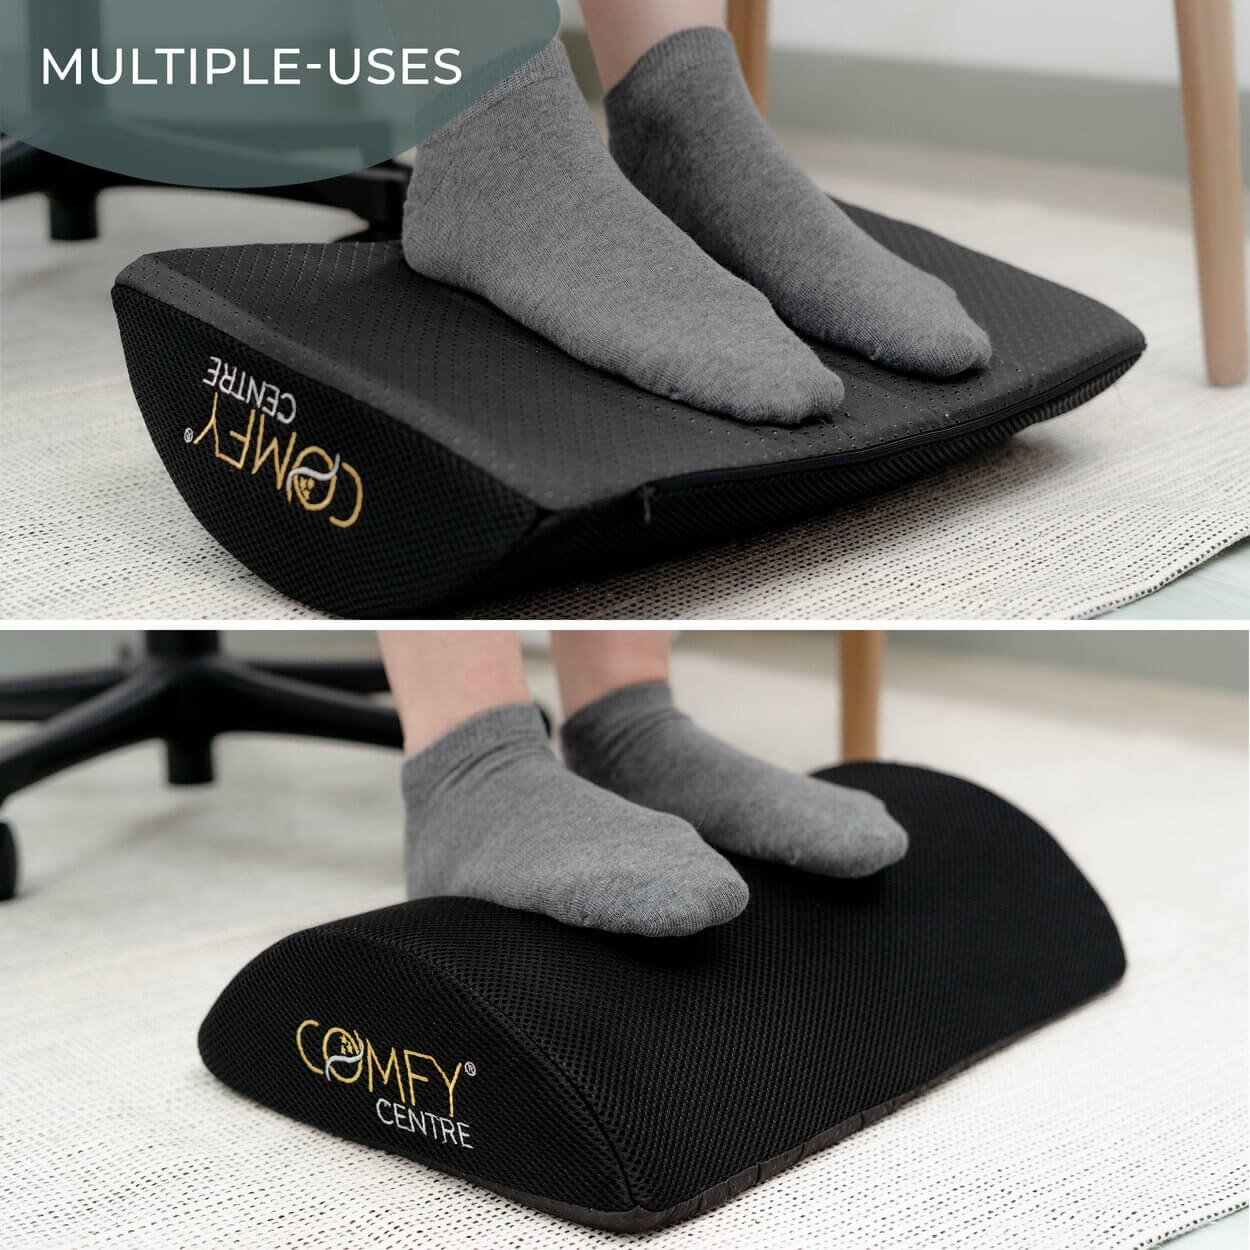 Foot Pillow - Ergonomic Foot Support for Home or Office